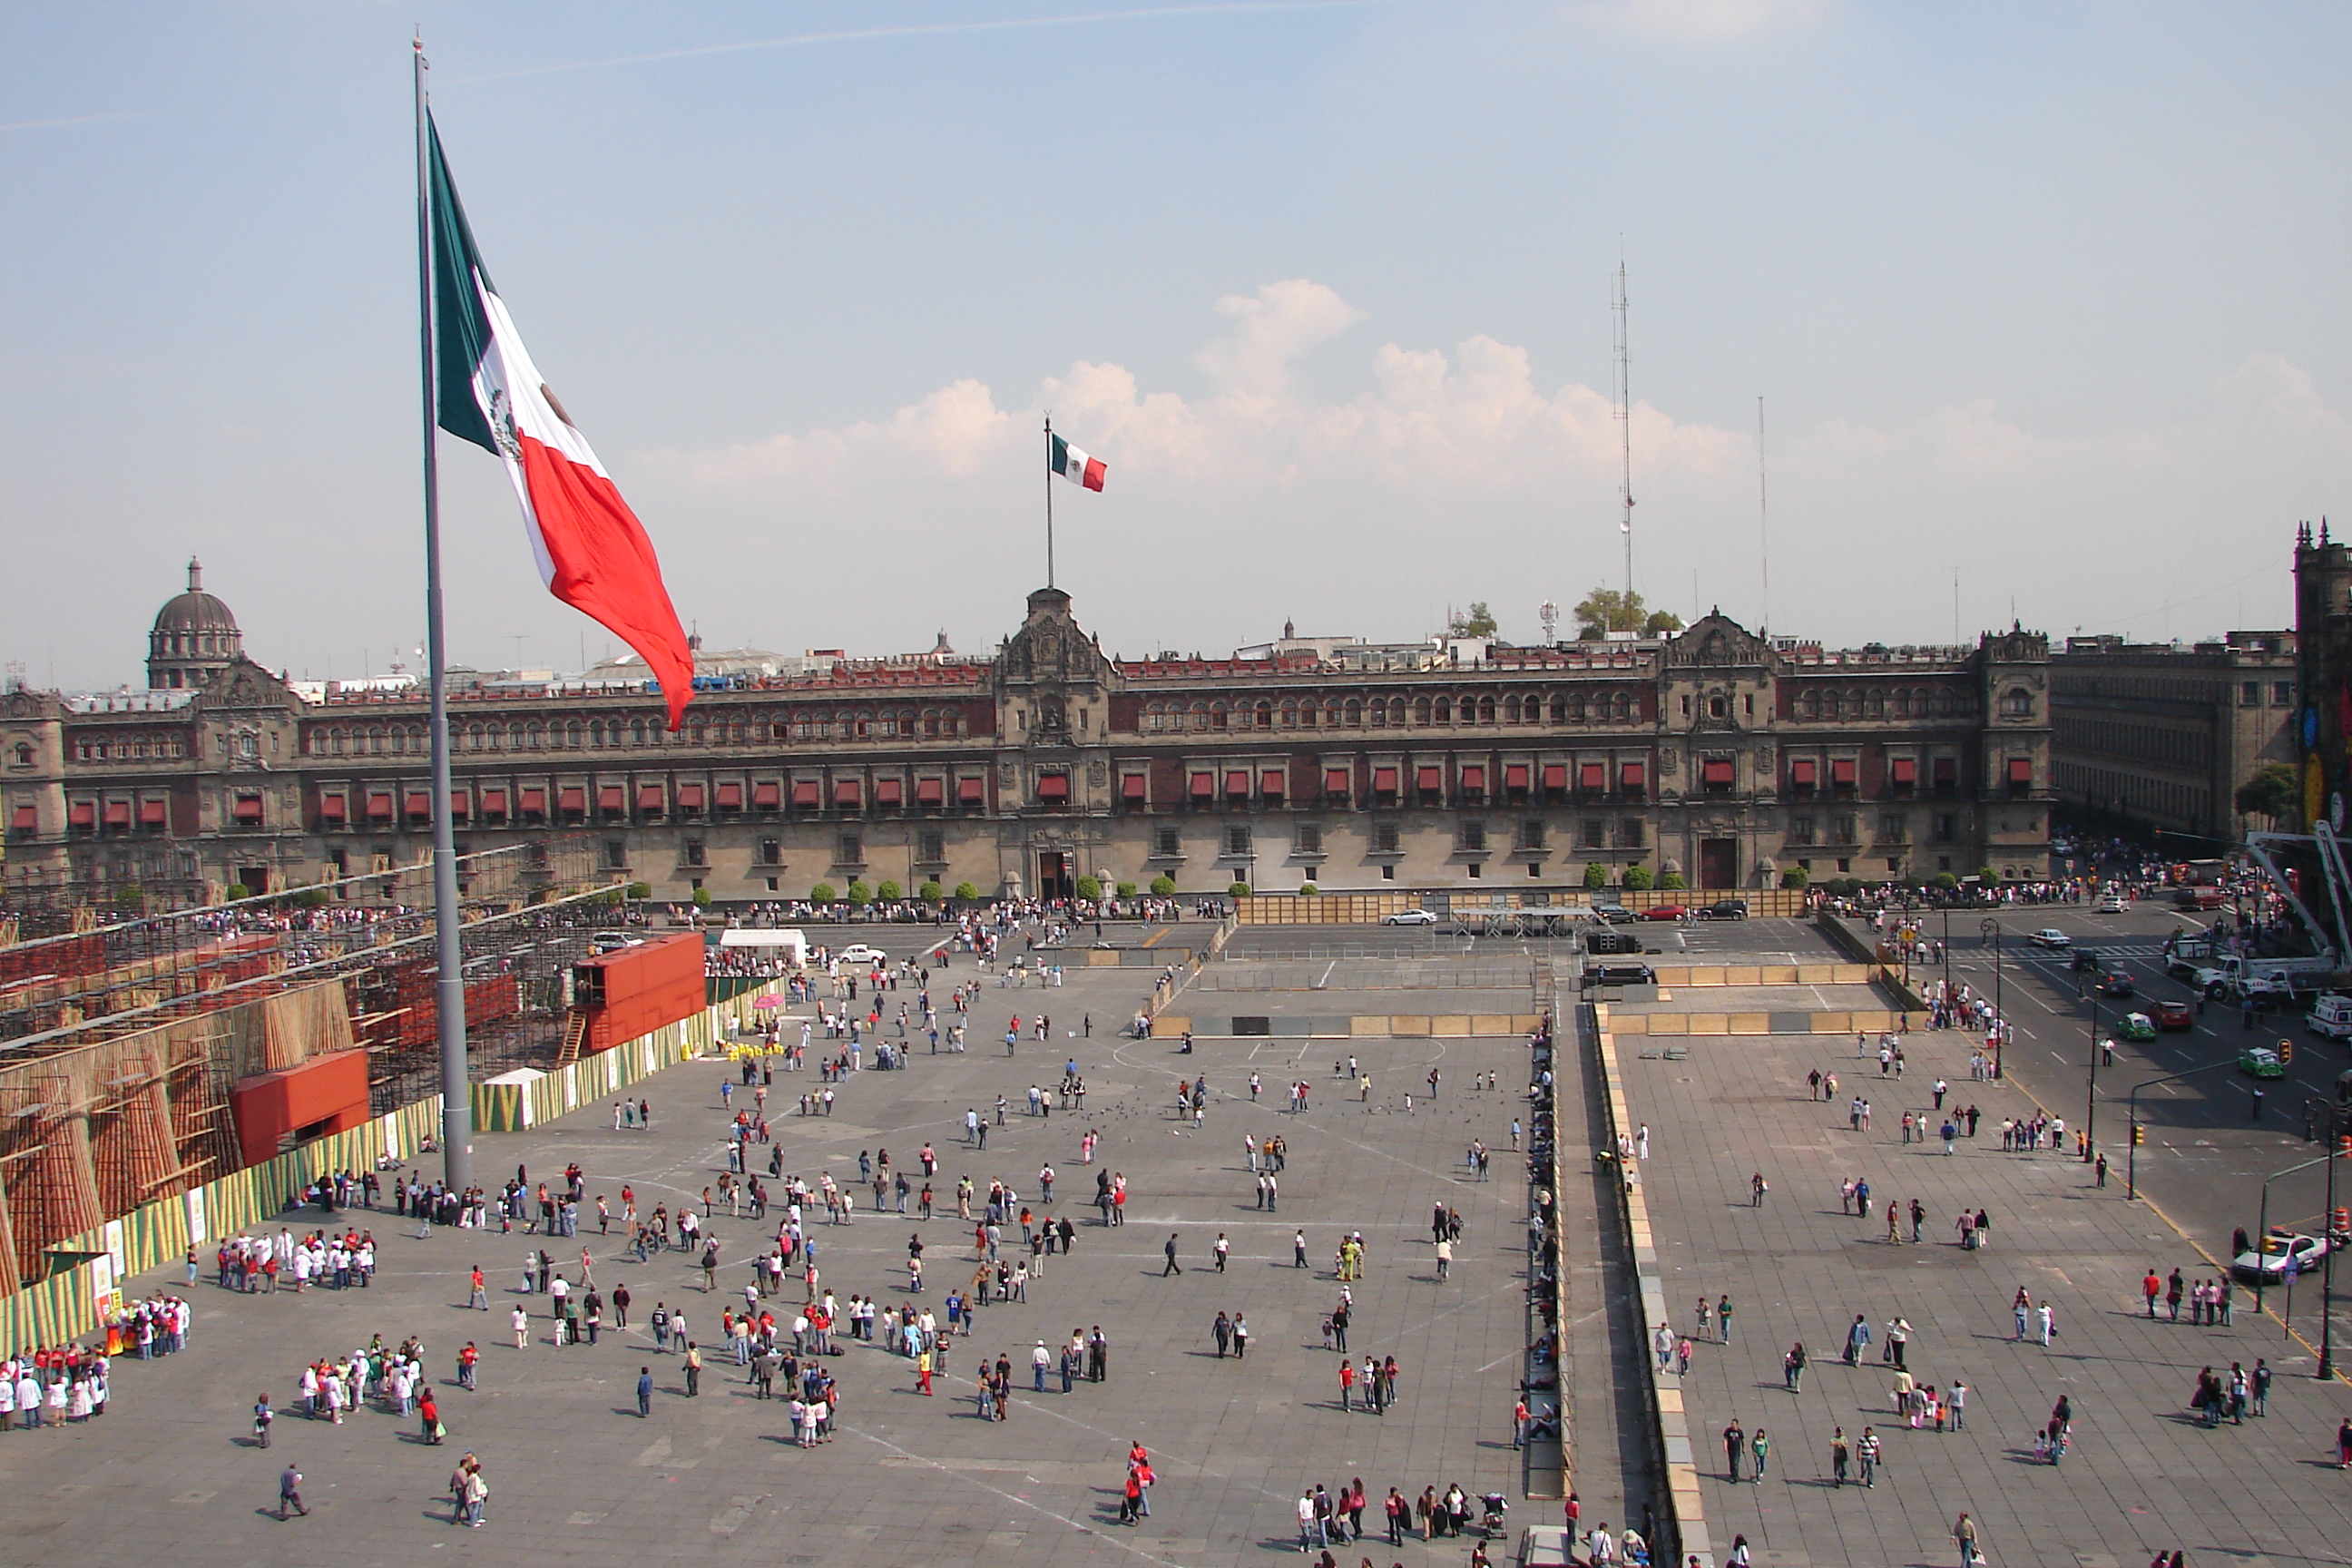 Zócalo, Mexico City | © Antony Stanley/Flickr